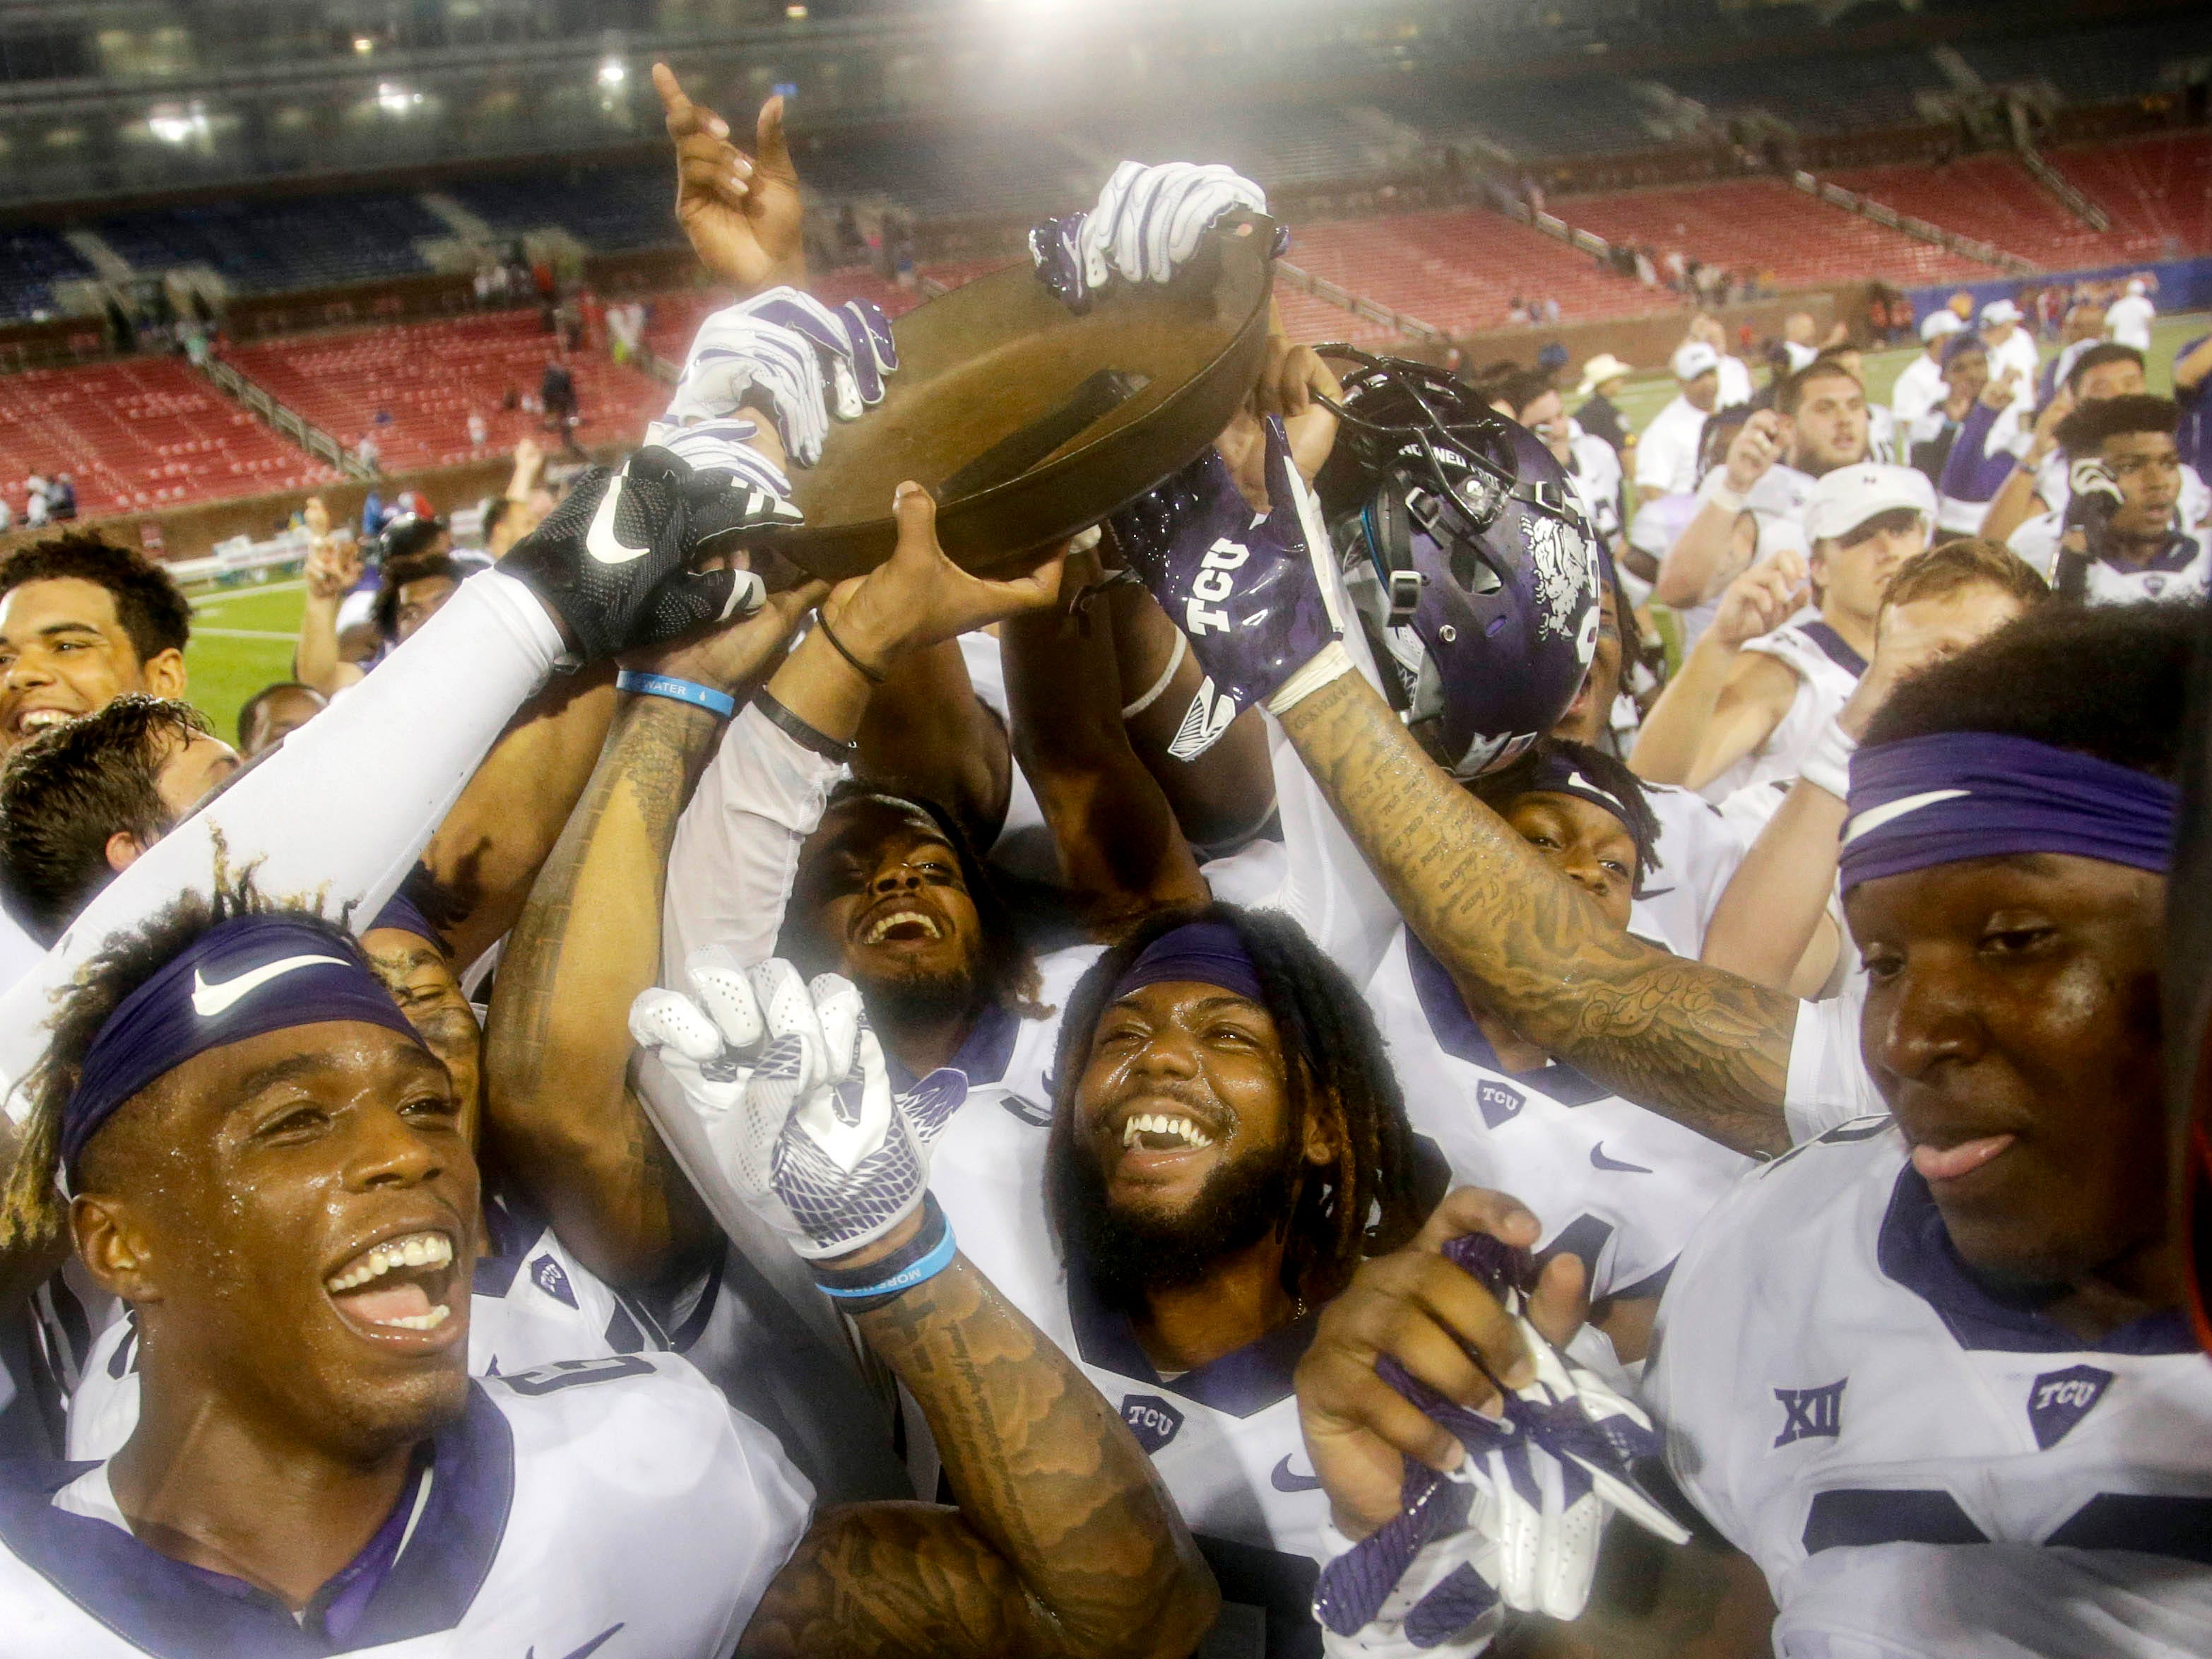 TCU Horned Frogs players hold up the Iron Skillet after the game against the Southern Methodist Mustangs.